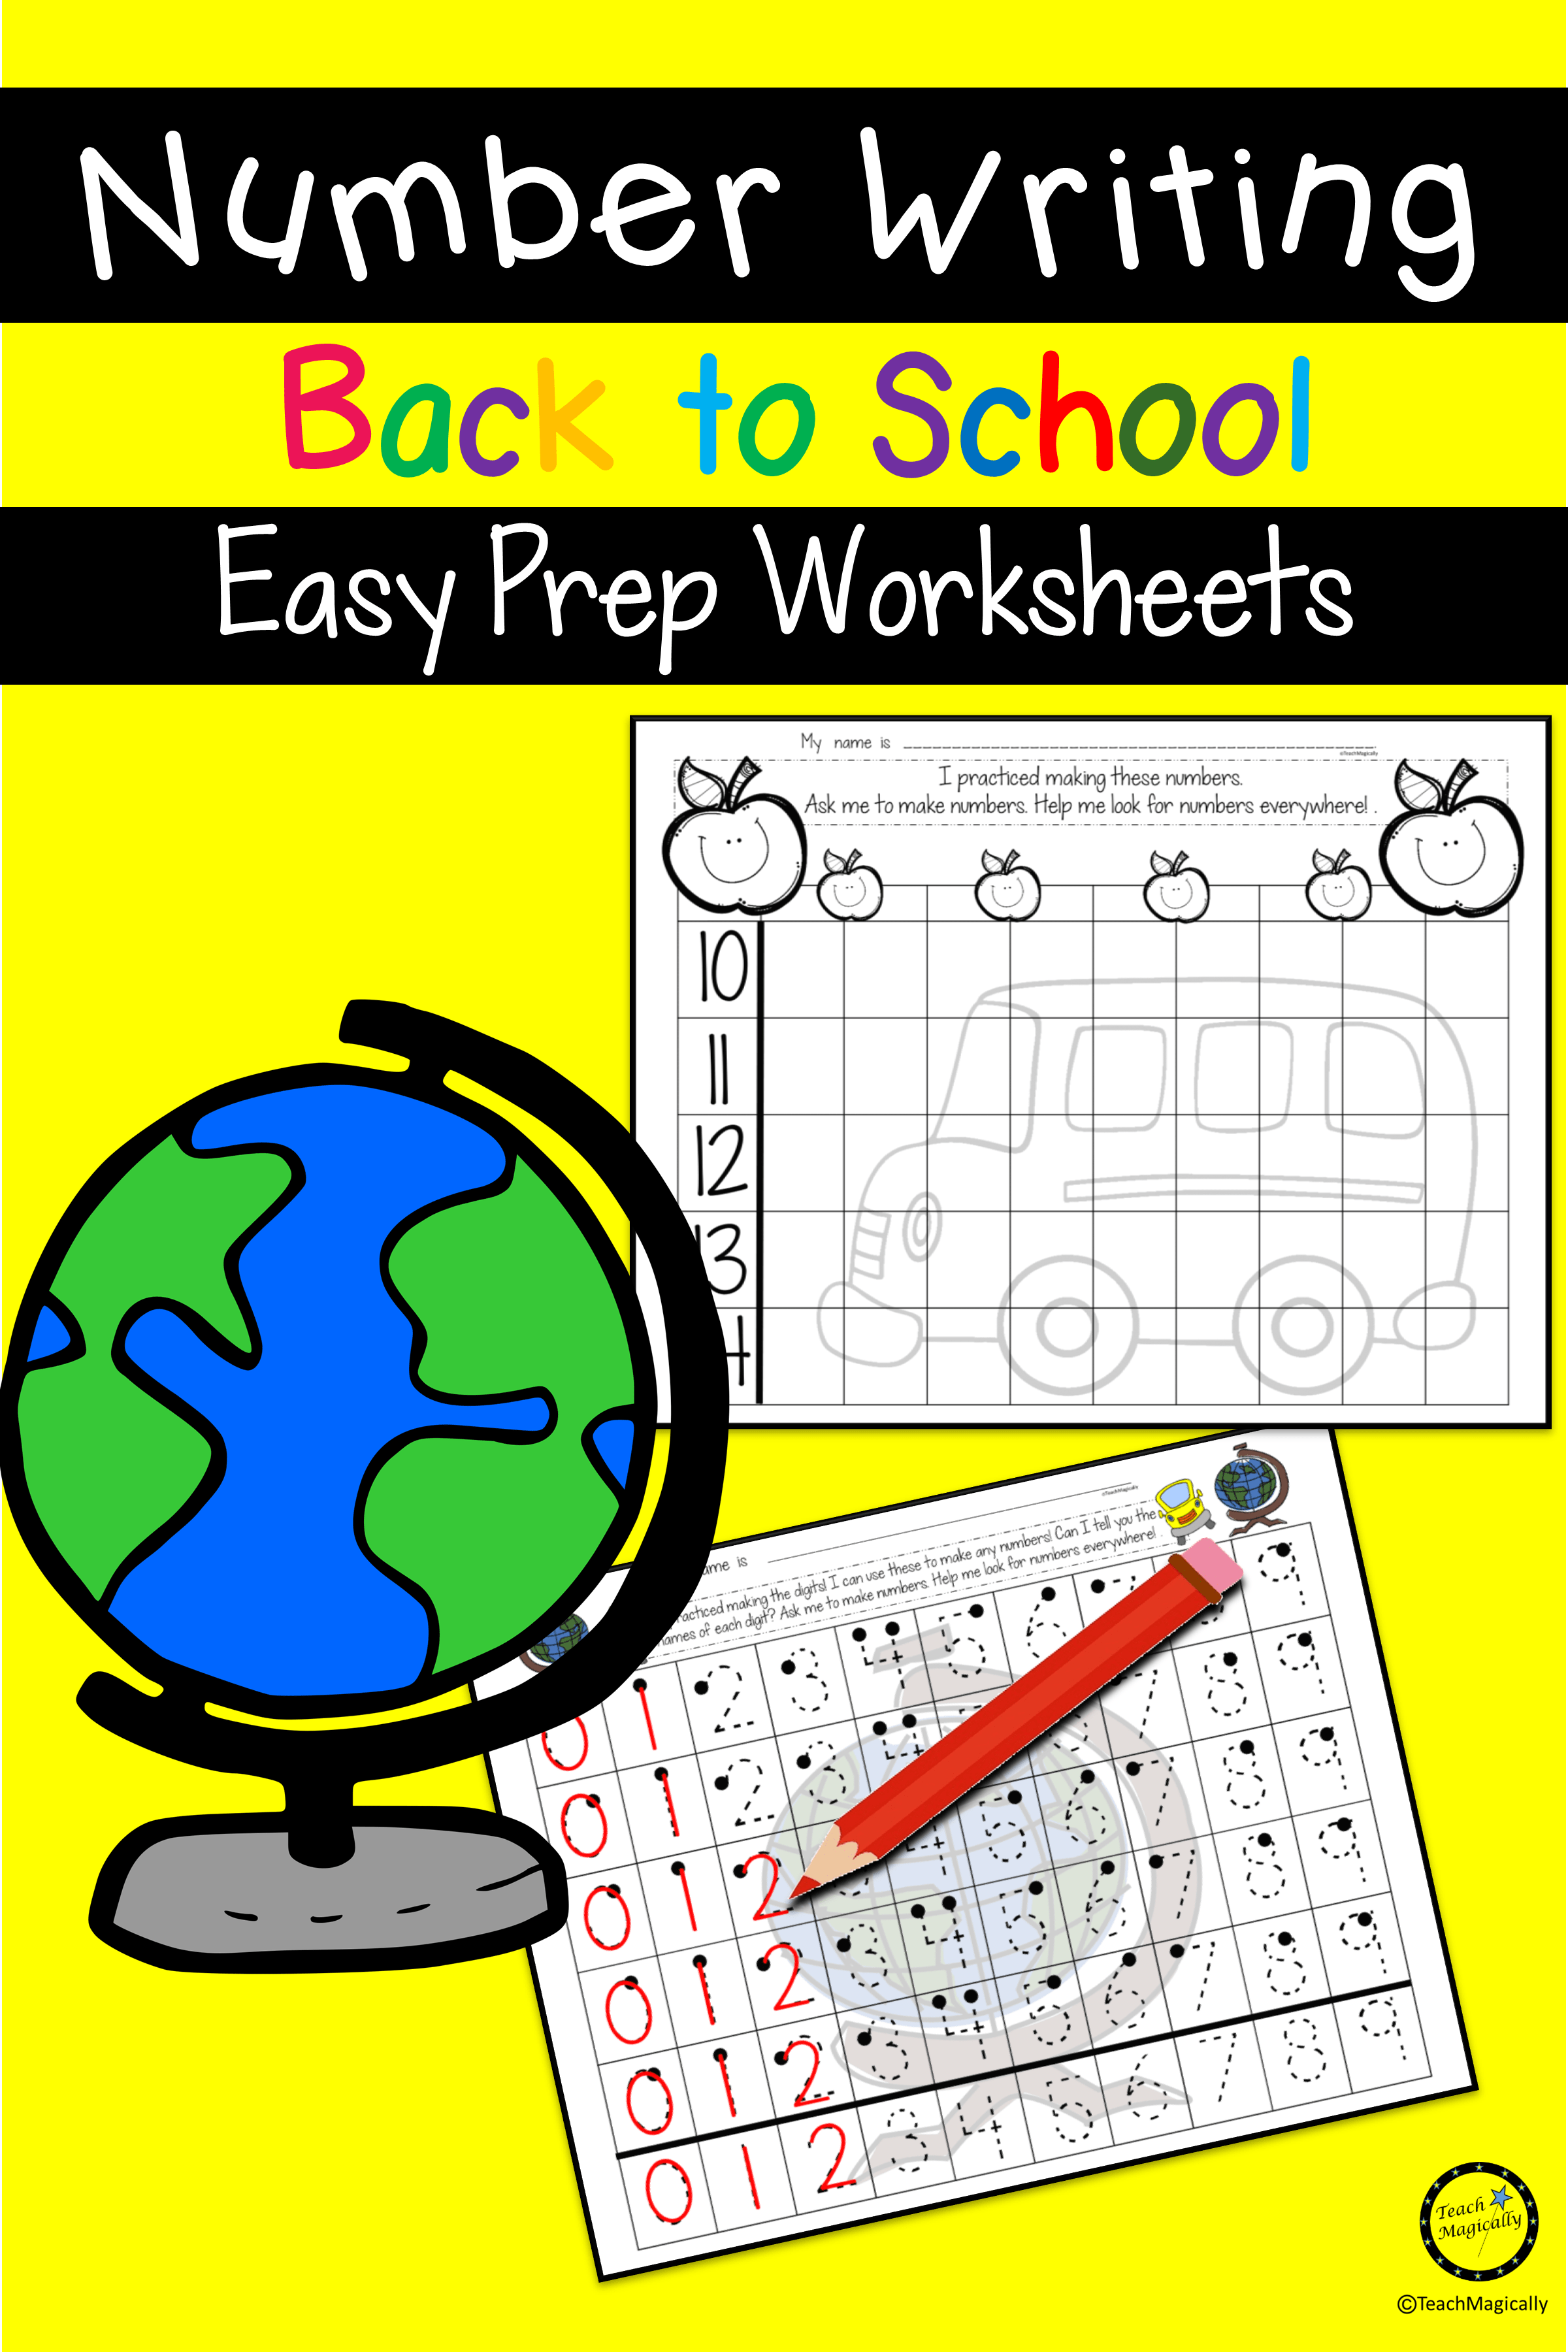 12 Best Worksheets Practice Writing Number Words Images On